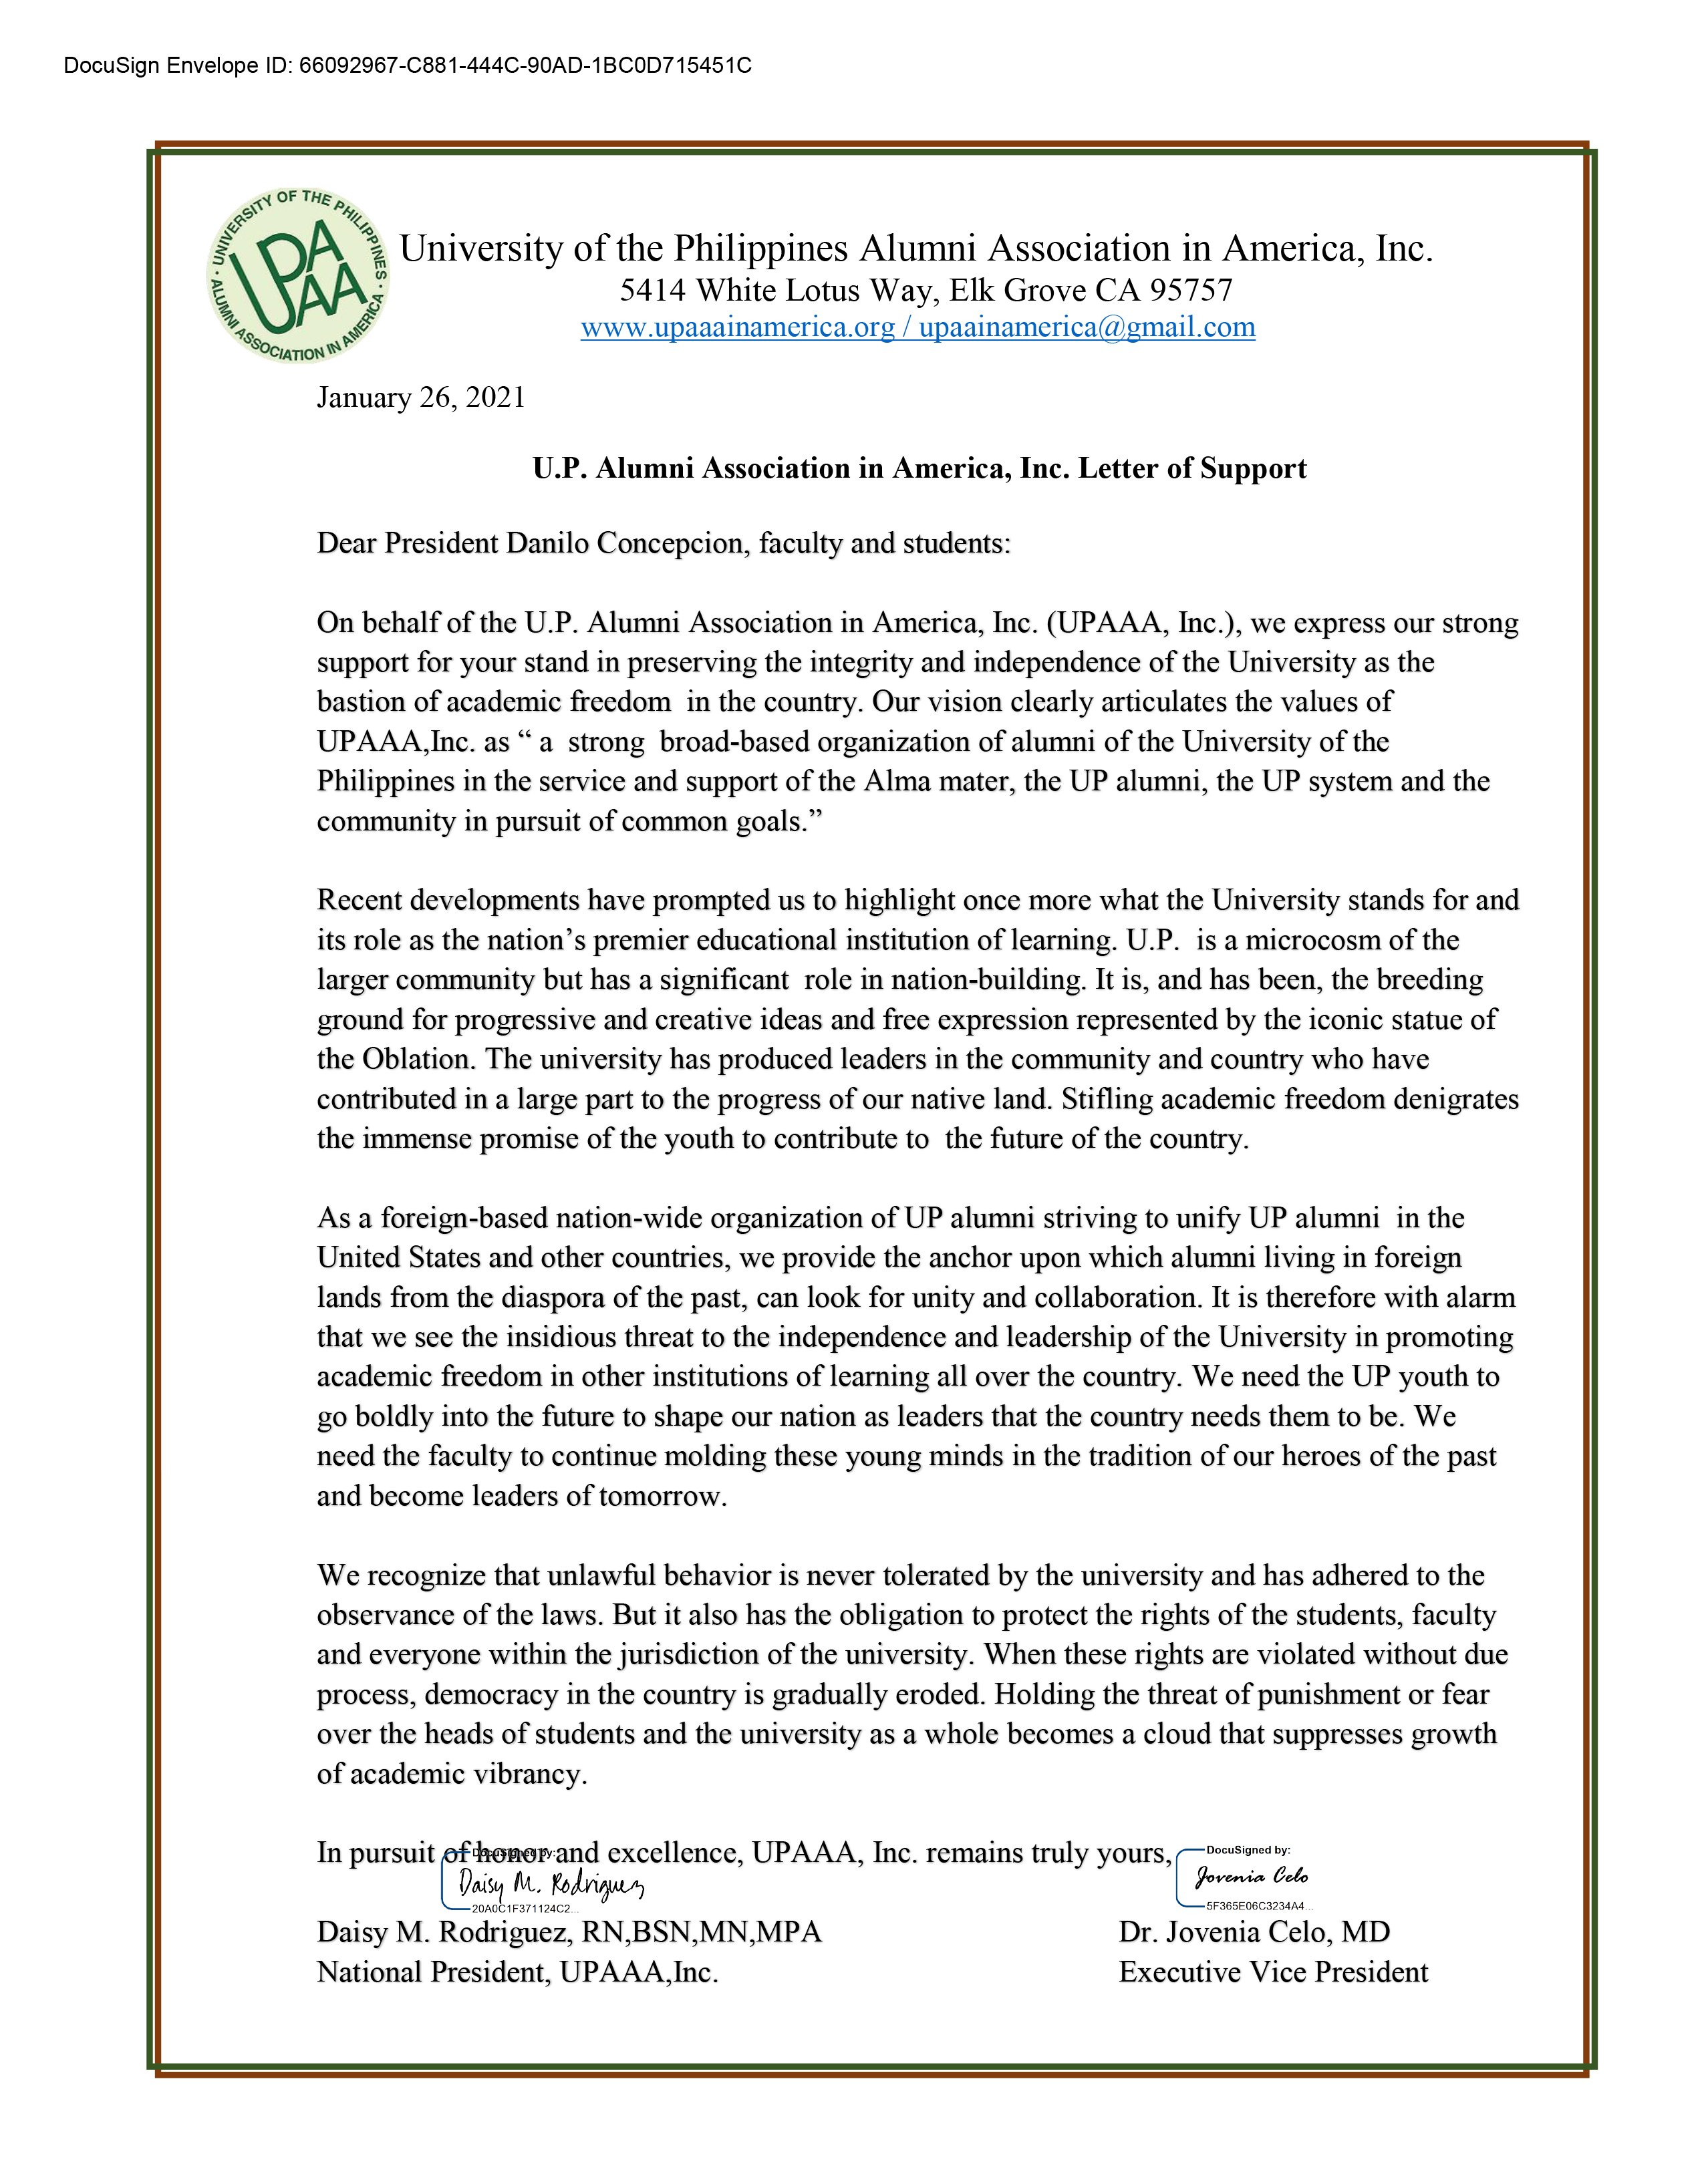 UP Alumni Association in America, Inc. supports UP's fight for academic freedom